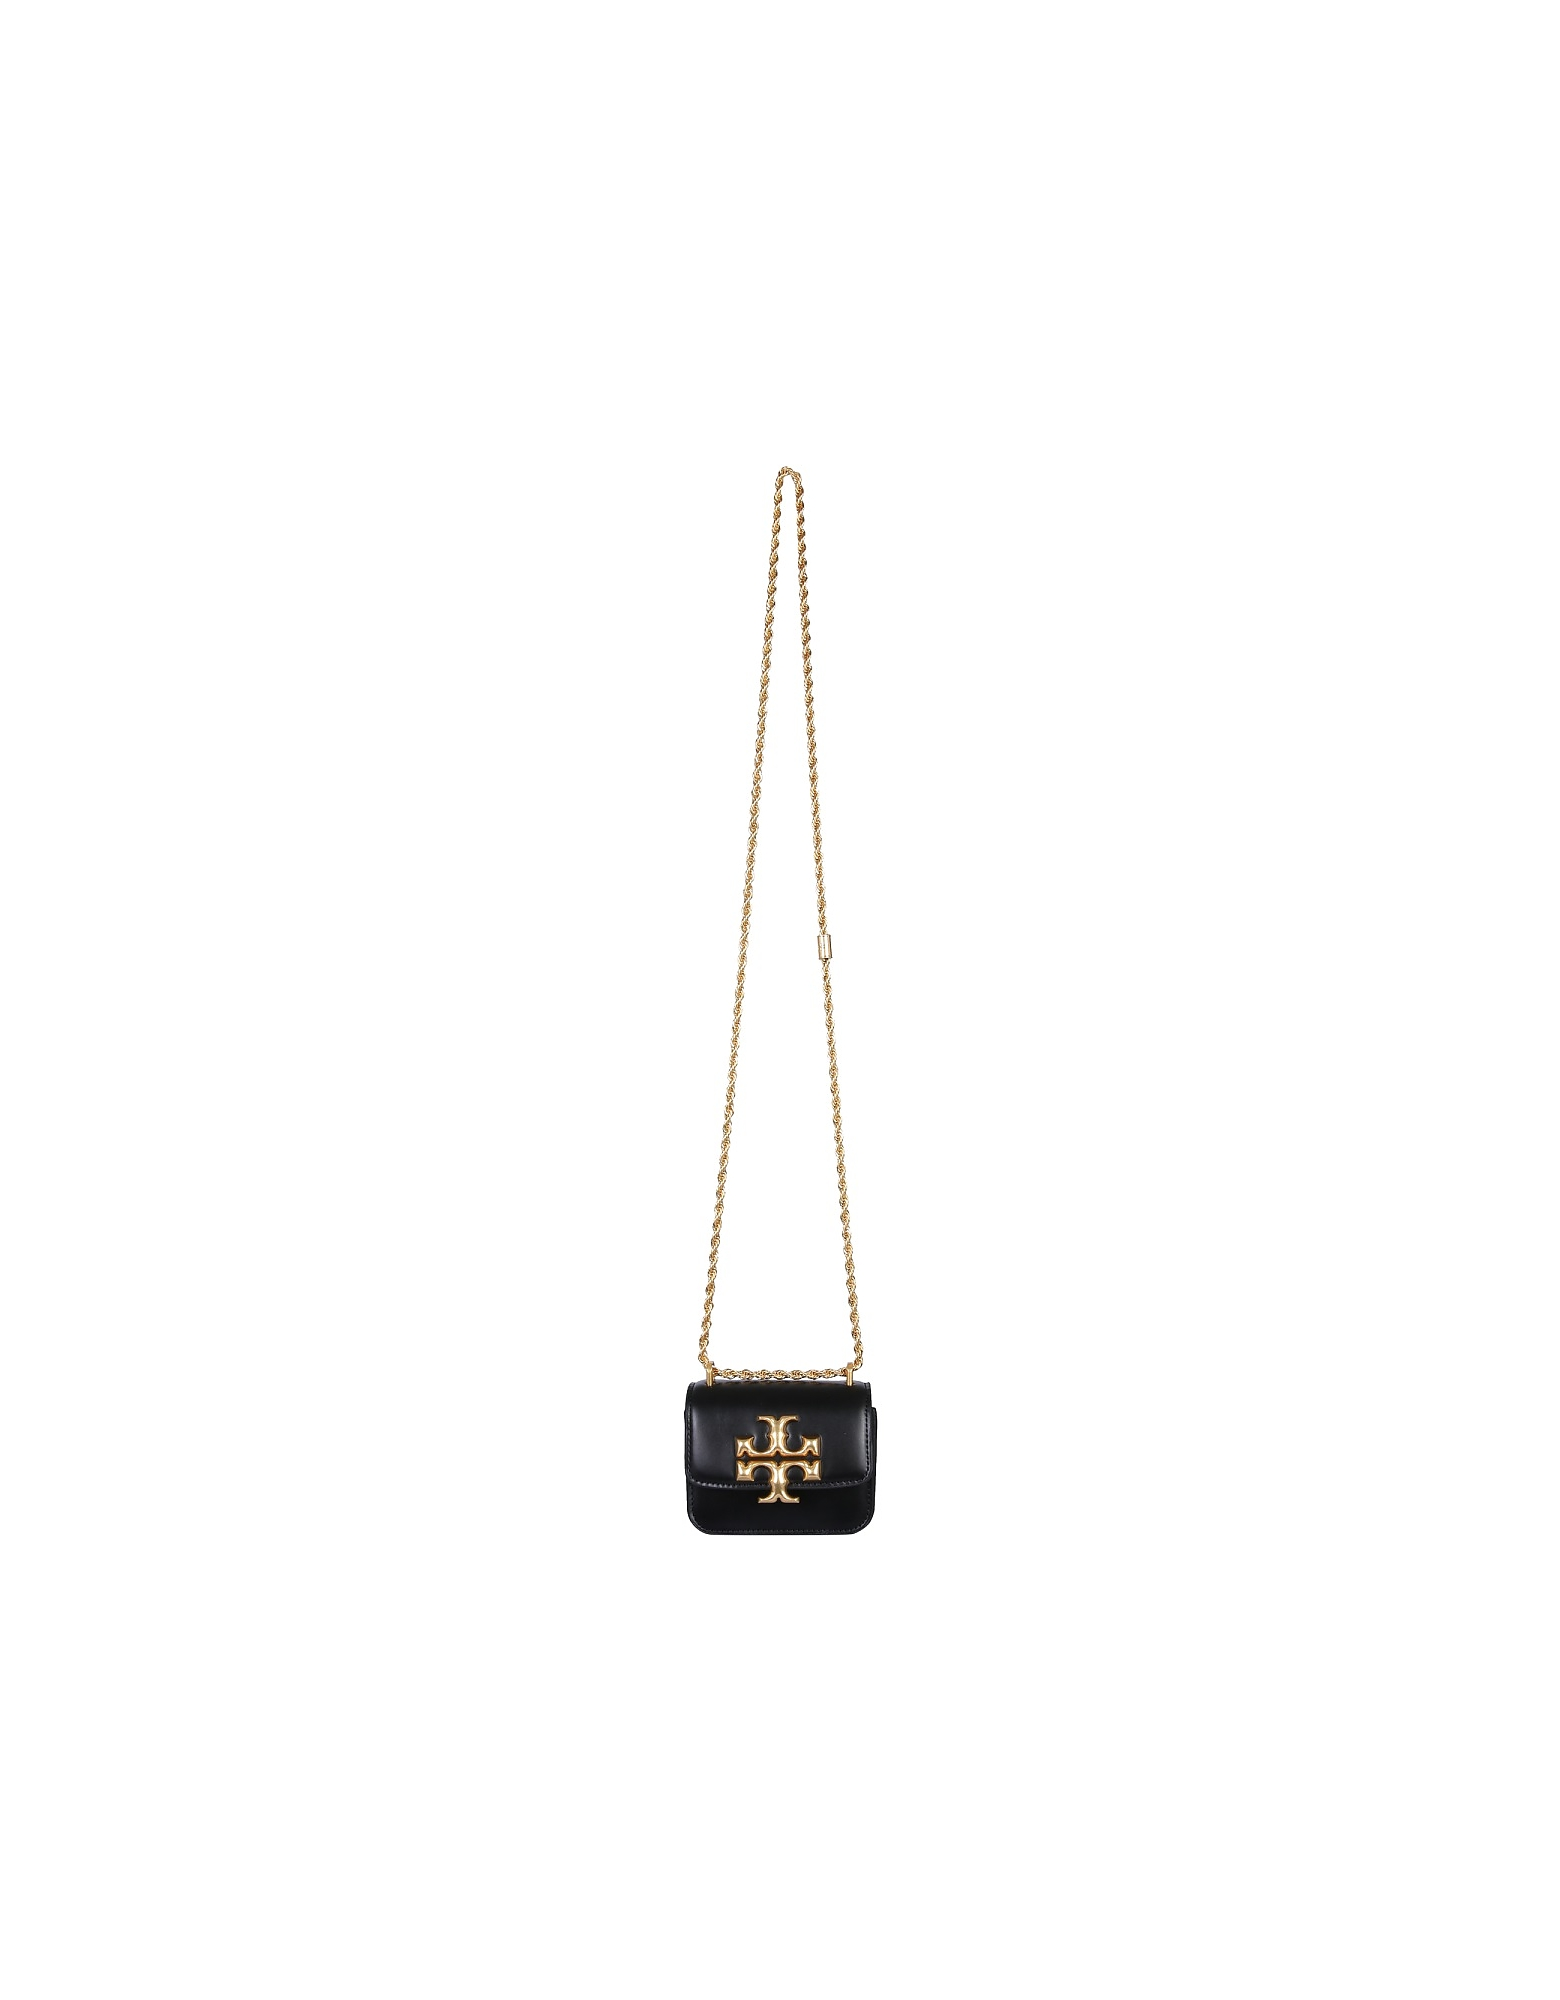 Tory Burch Designer Handbags,